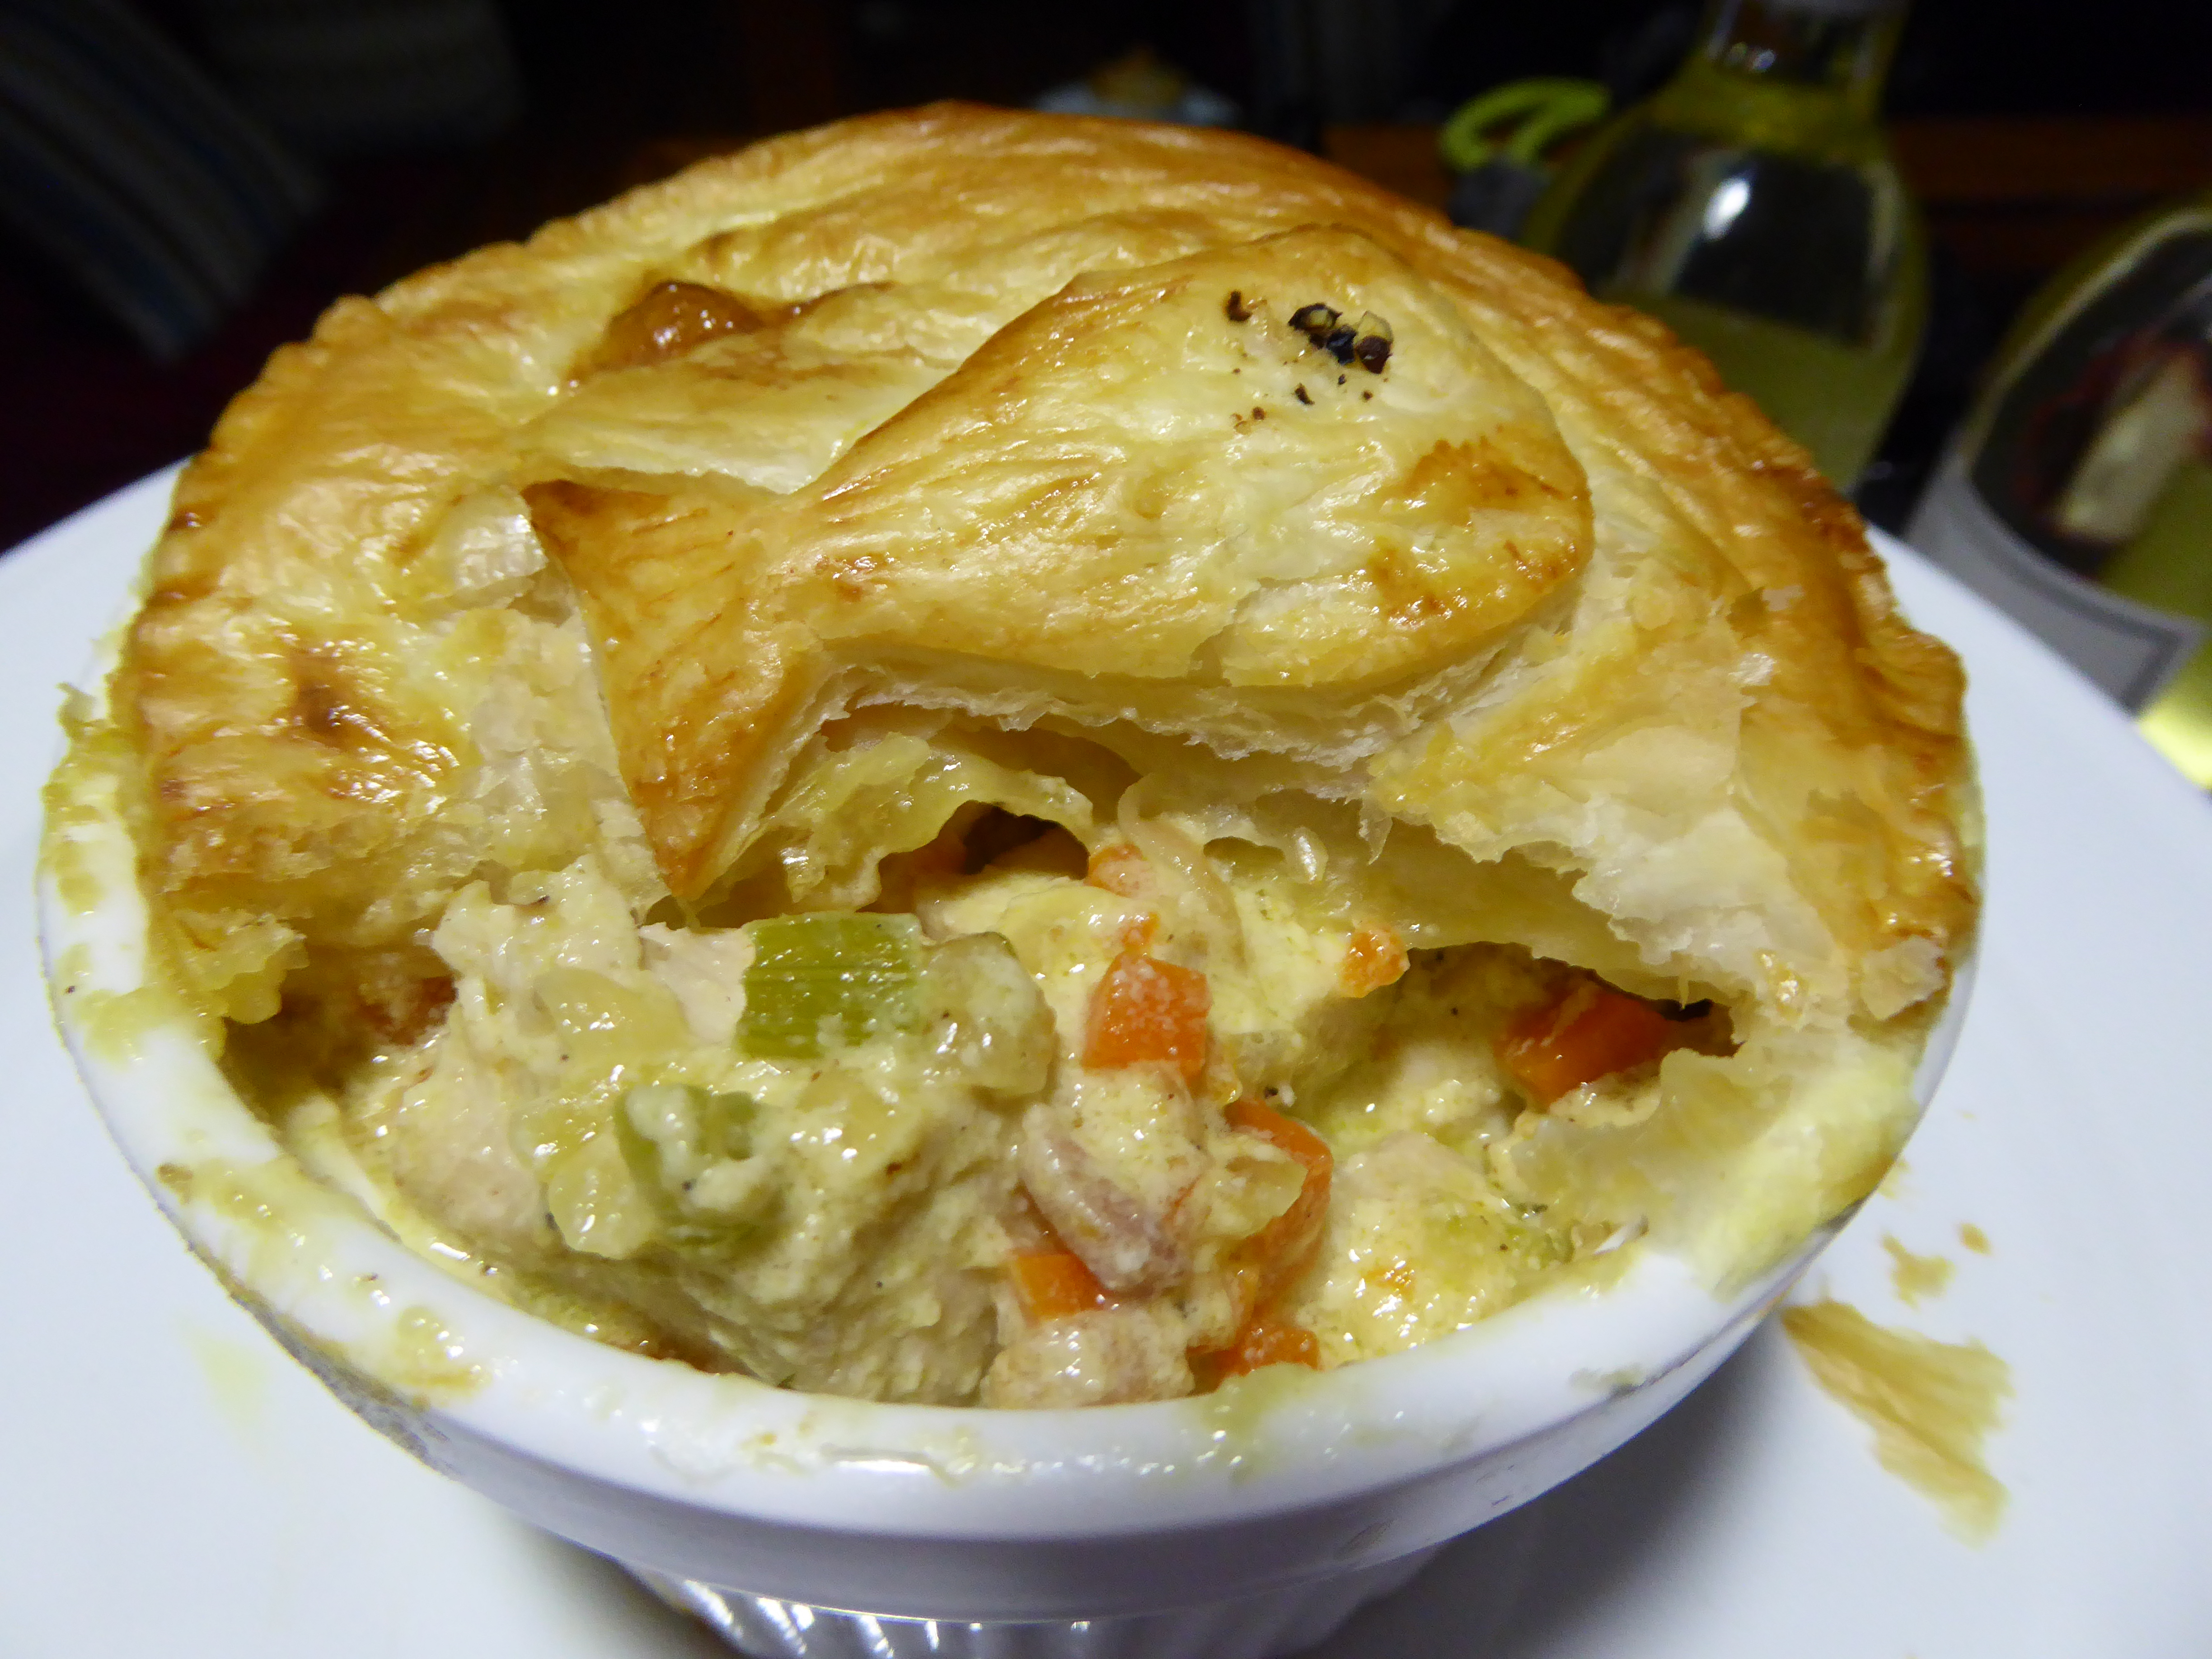 Marlin pies ready to east. Delicious marlin filled pie with puff pastry